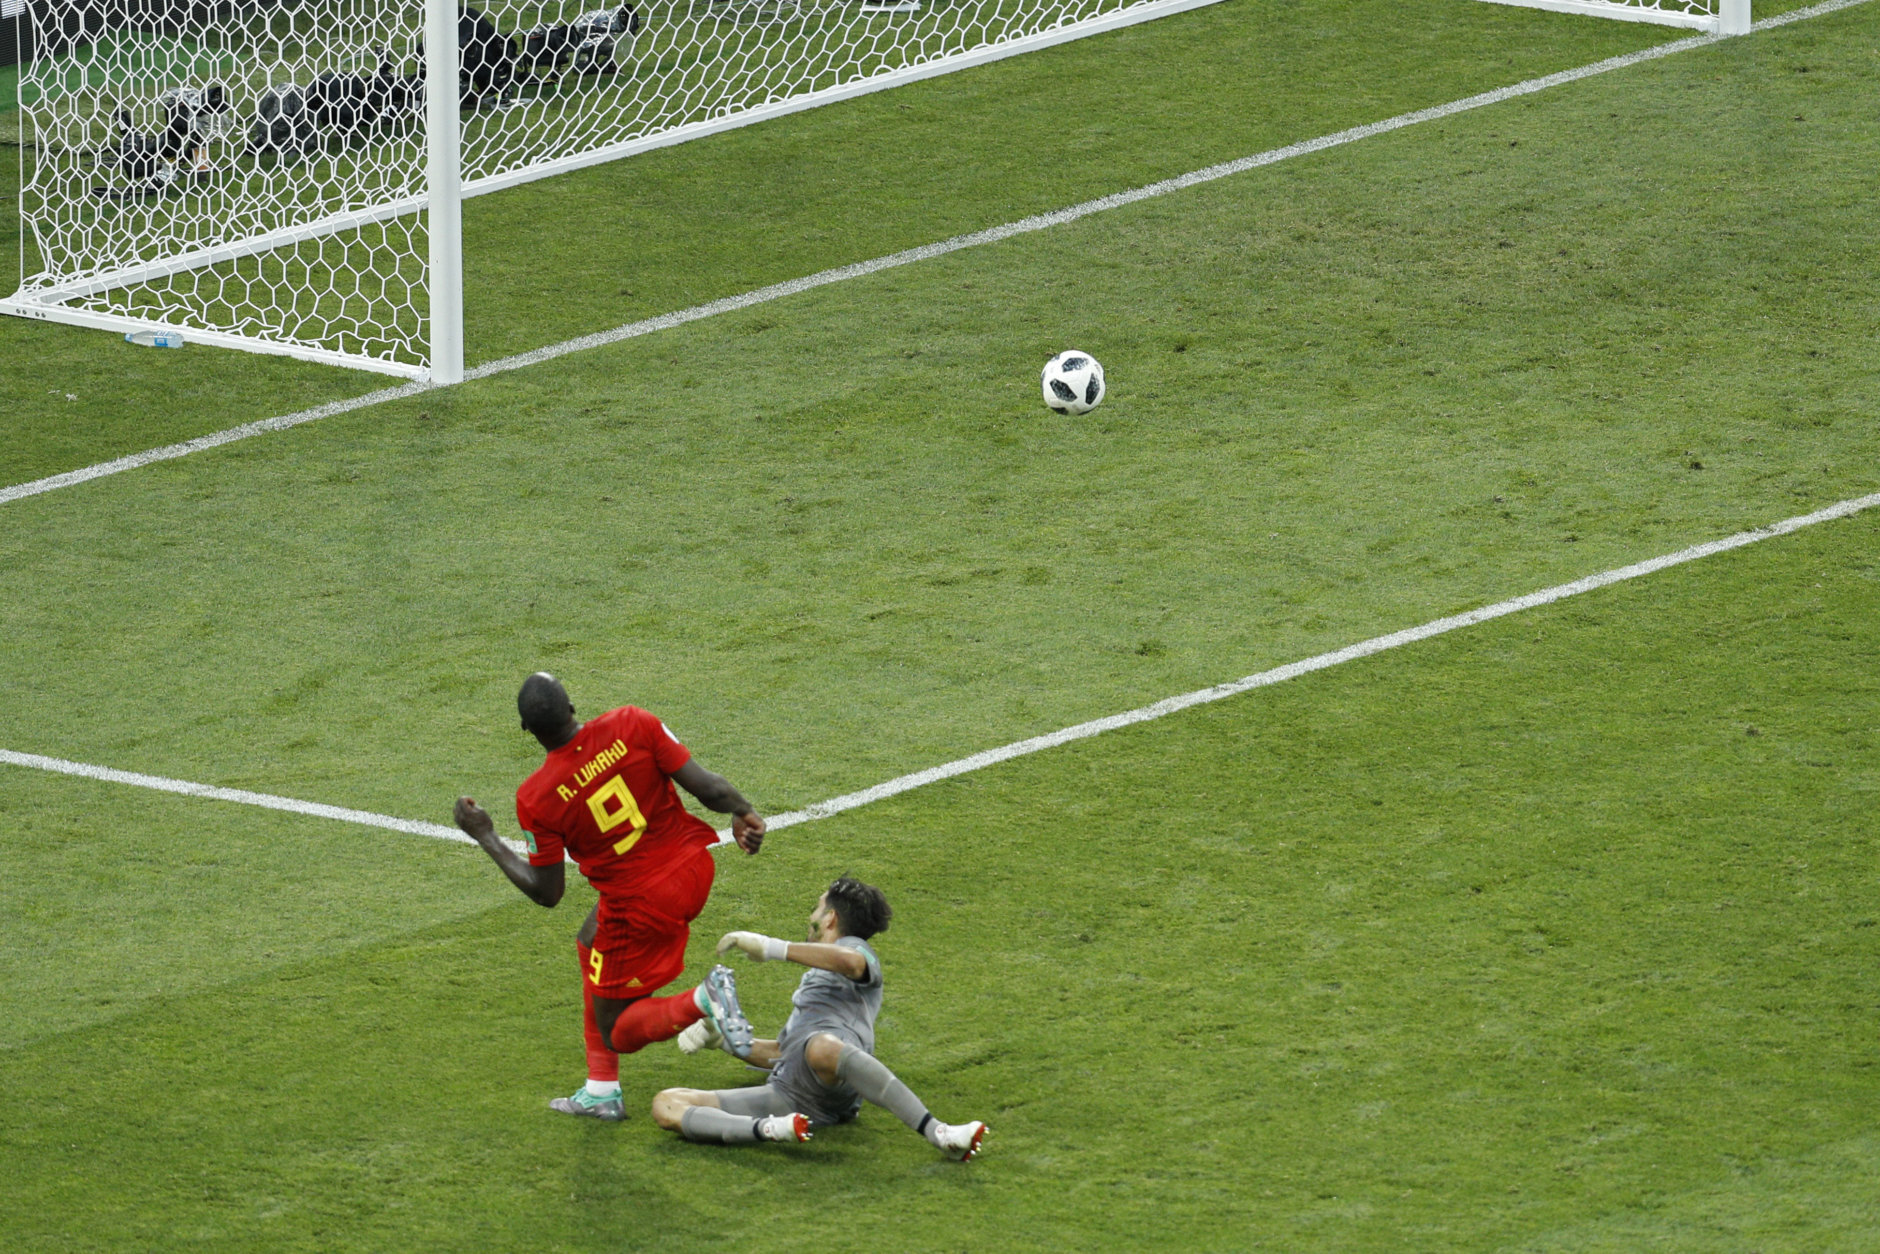 Belgium's Romelu Lukaku, left, scores past Panama goalkeeper Jaime Penedo his side's third goal during the group G match between Belgium and Panama at the 2018 soccer World Cup in the Fisht Stadium in Sochi, Russia, Monday, June 18, 2018. Belgium won 3-0. (AP Photo/Victor R. Caivano)